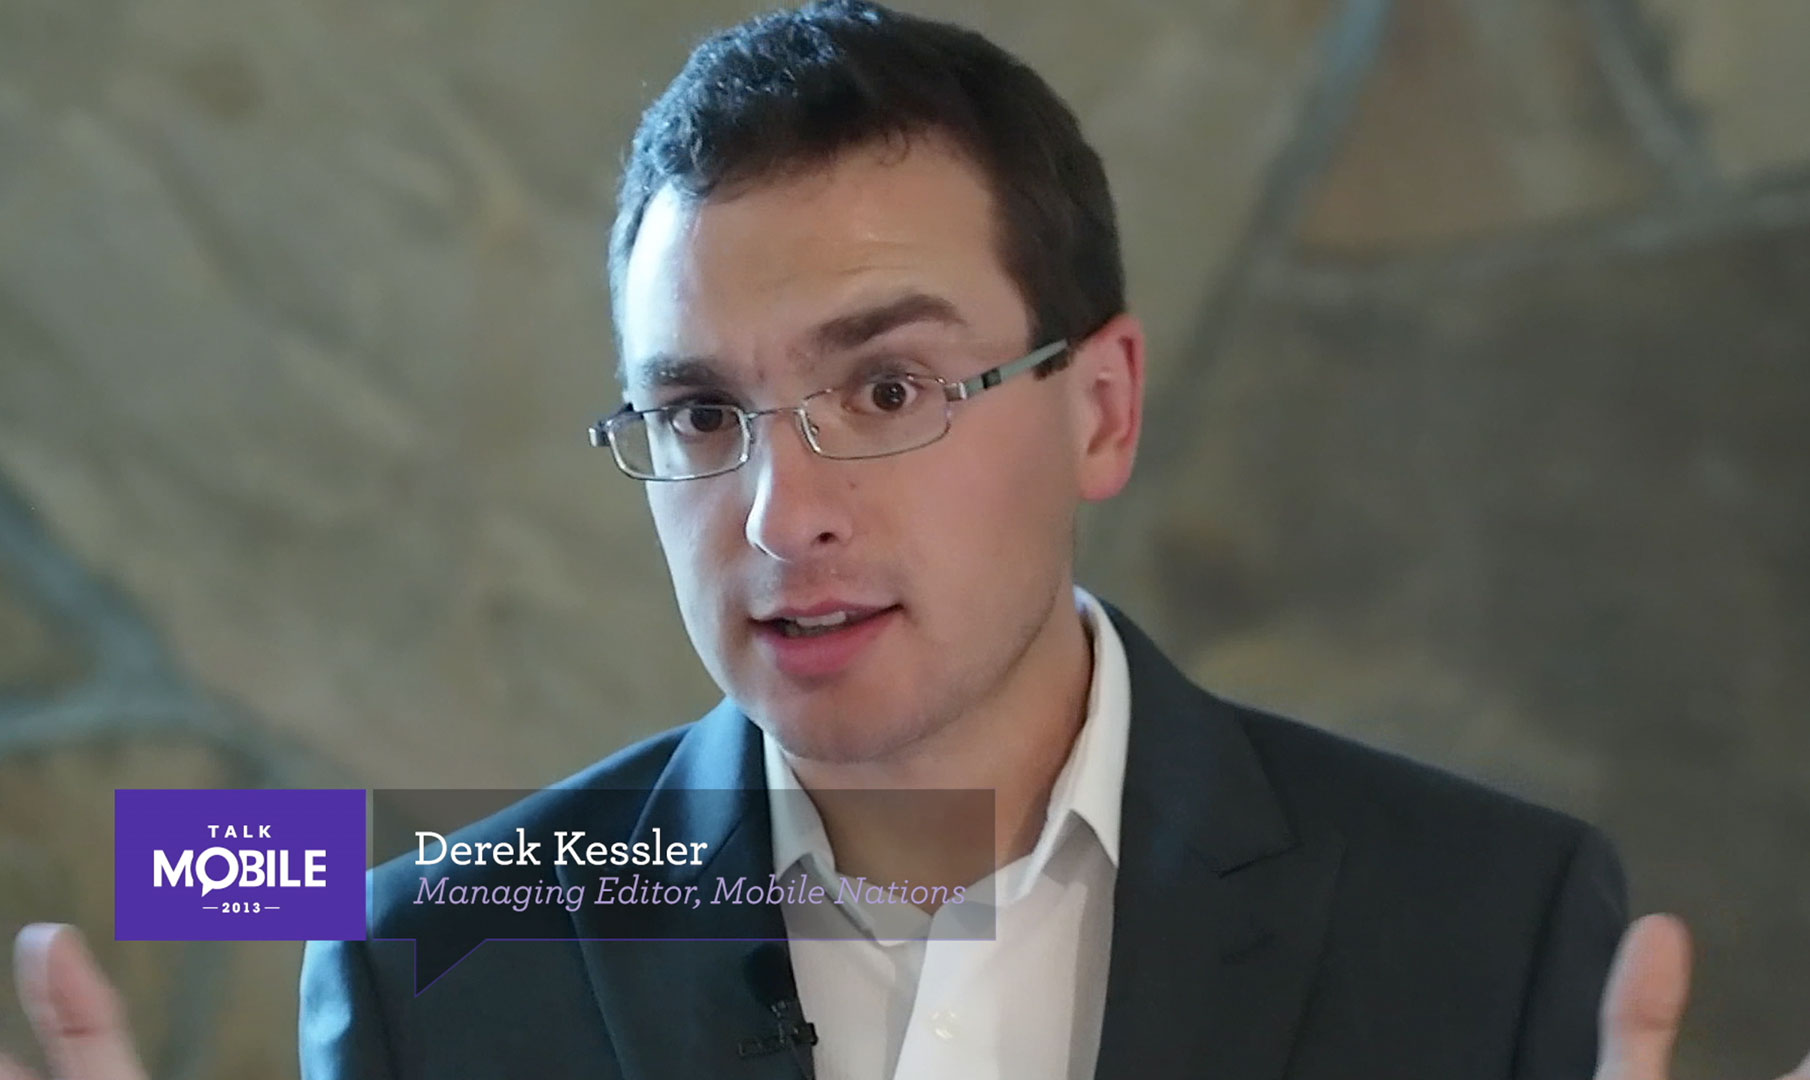 Derek Kessler talks 4K and High Frame Rate... on phones!